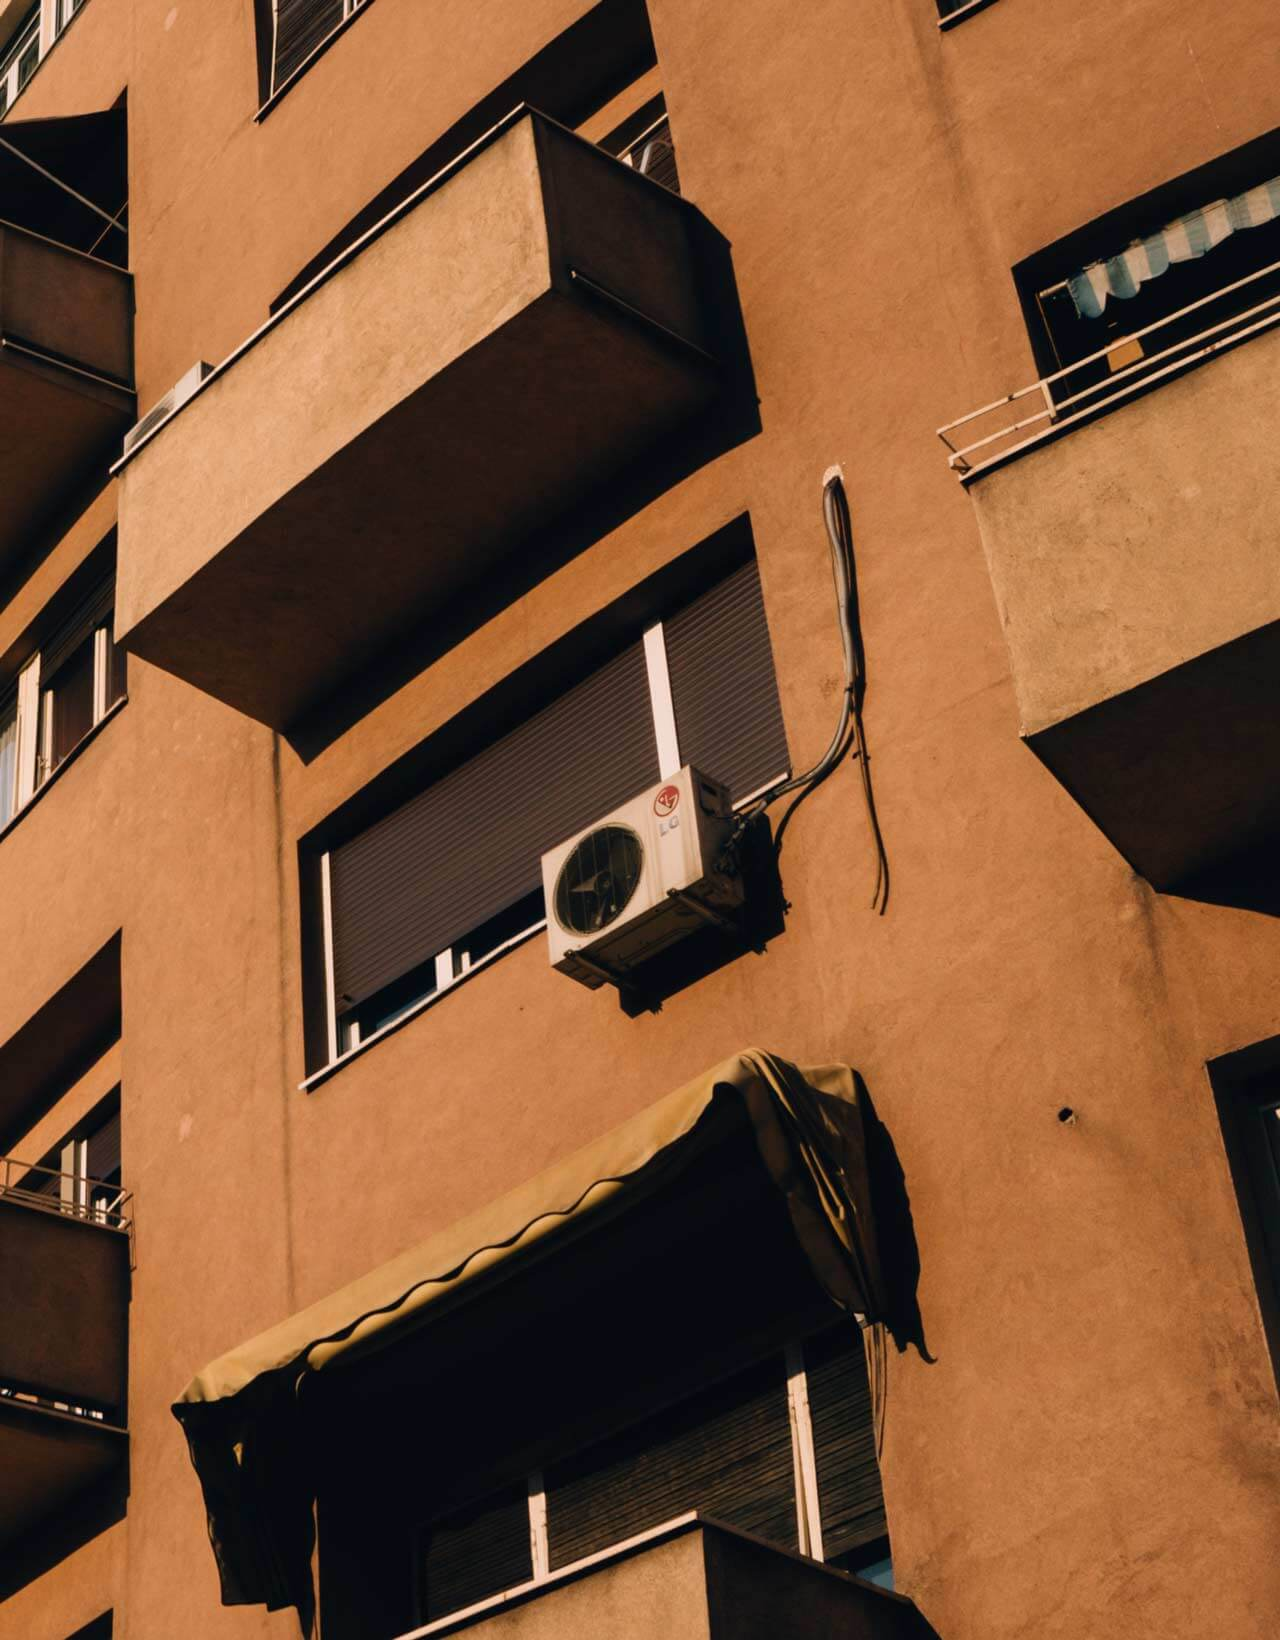 An old rustic brown apartment building with identical balconies lie contrast to a white air conditioner system hanging off the outside of the apartment.